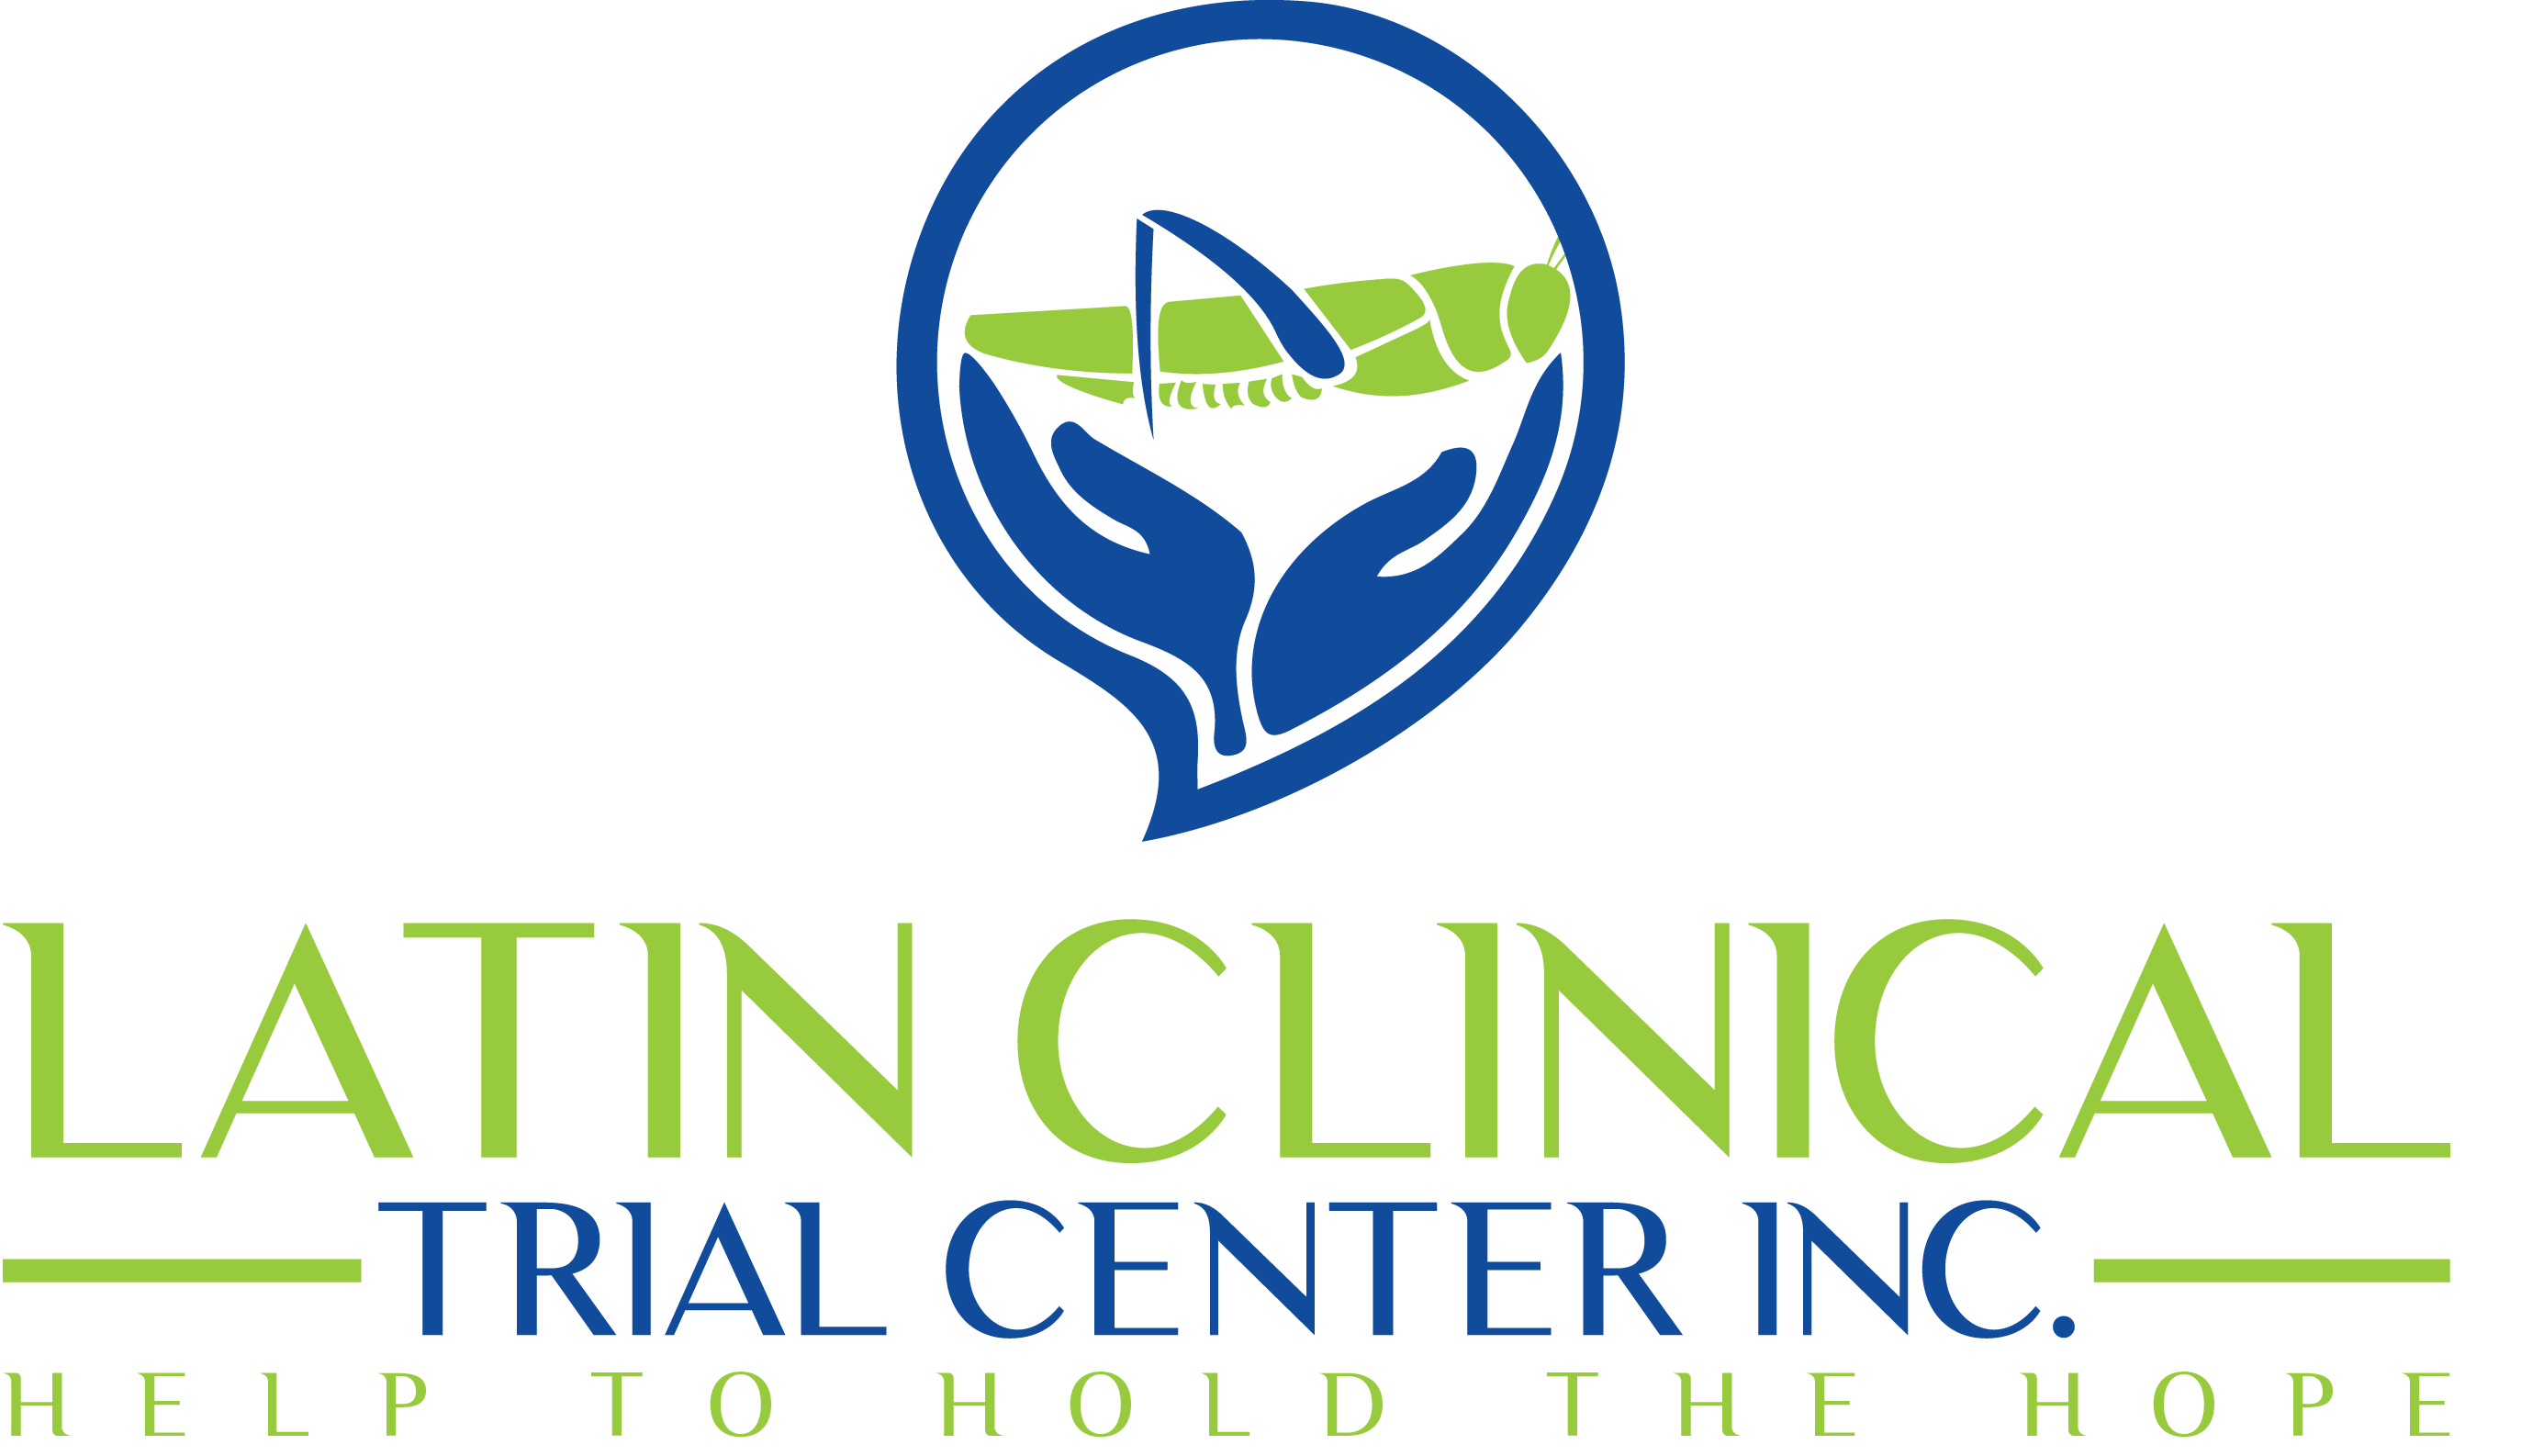 Latin Clinical Trial Center